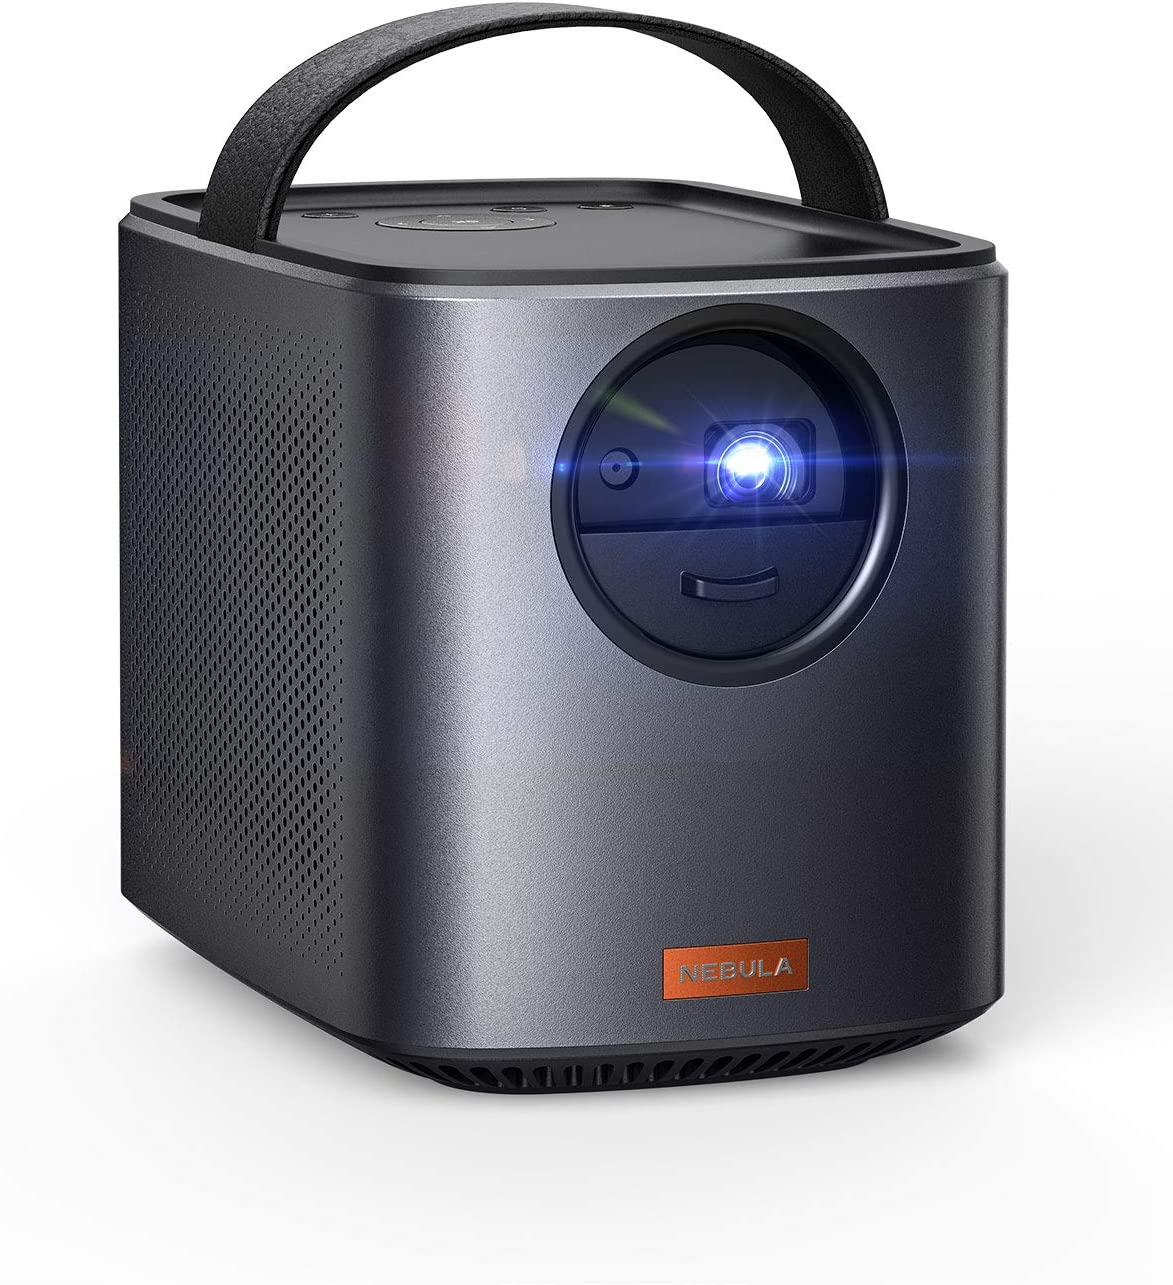 Nebula, by Anker, Mars II 300 ANSI Lumen Home Theater Portable Projector